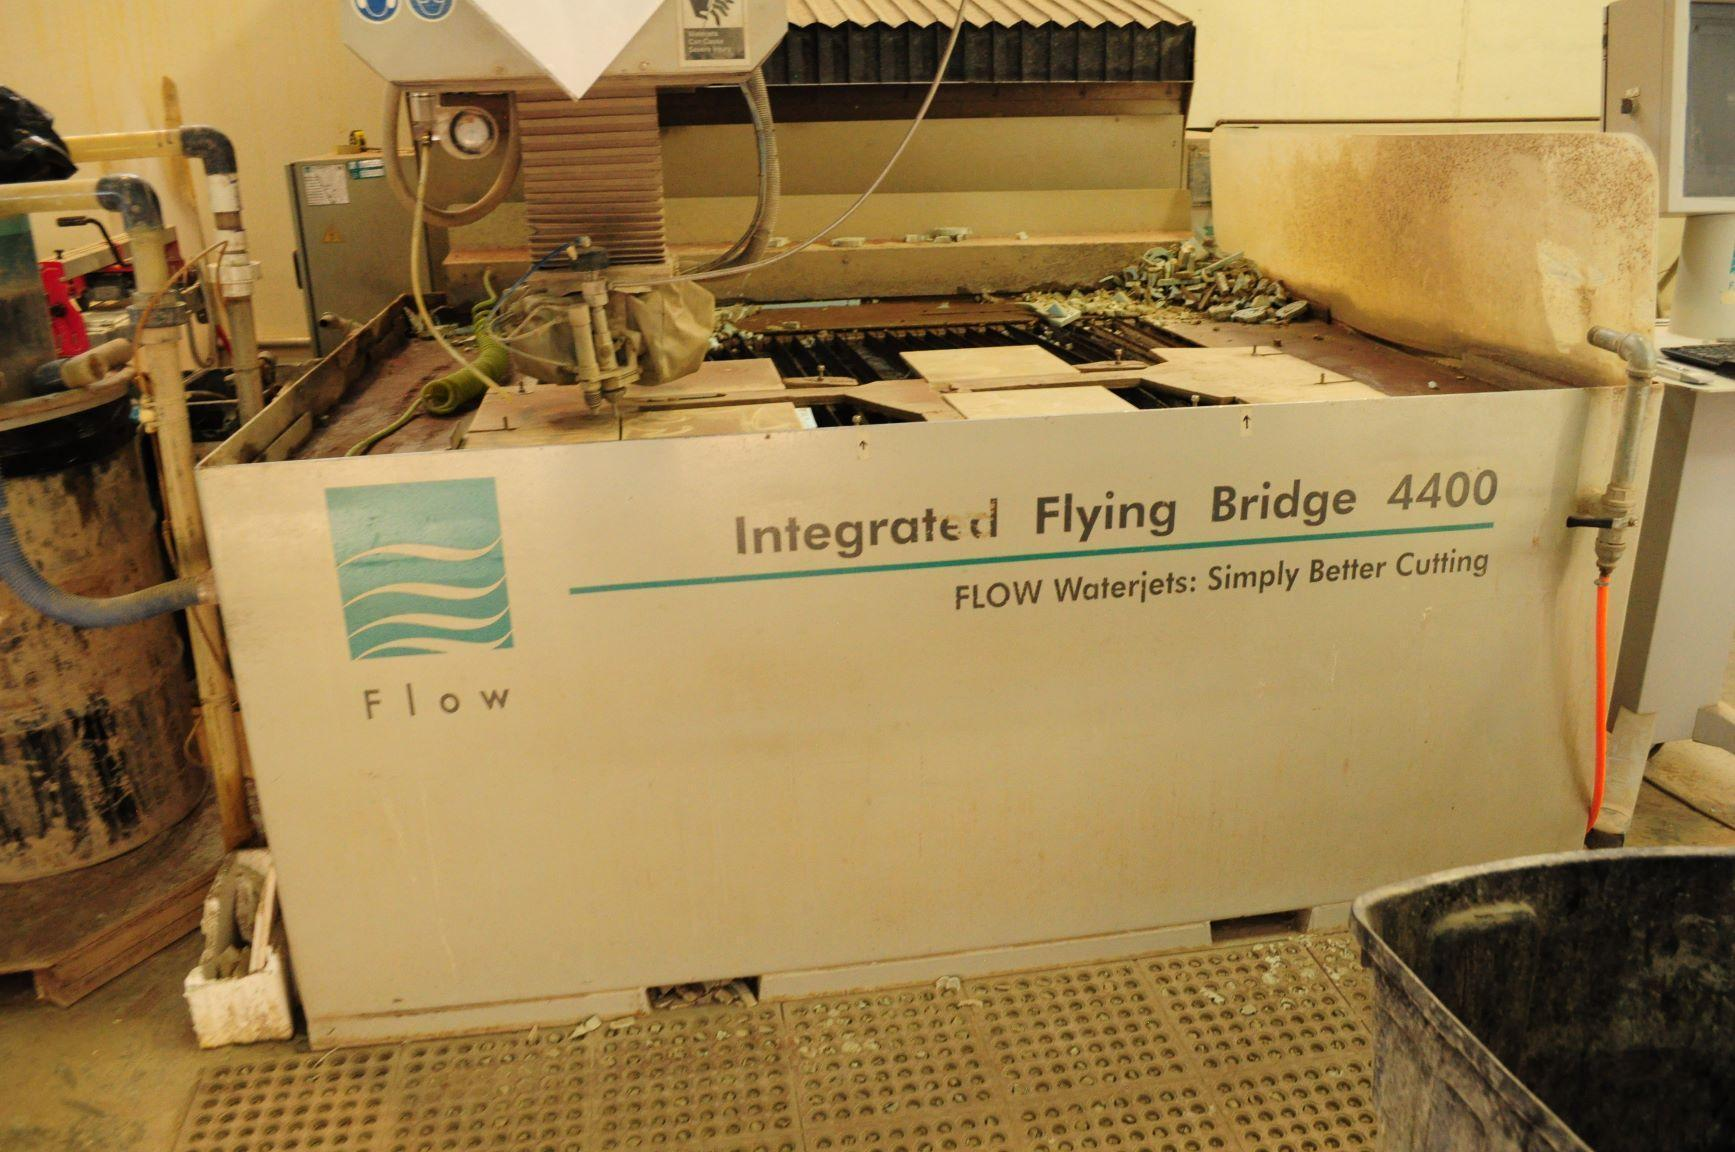 Flow IFB 4400 Dynamic Waterjet Cutting System - 2006